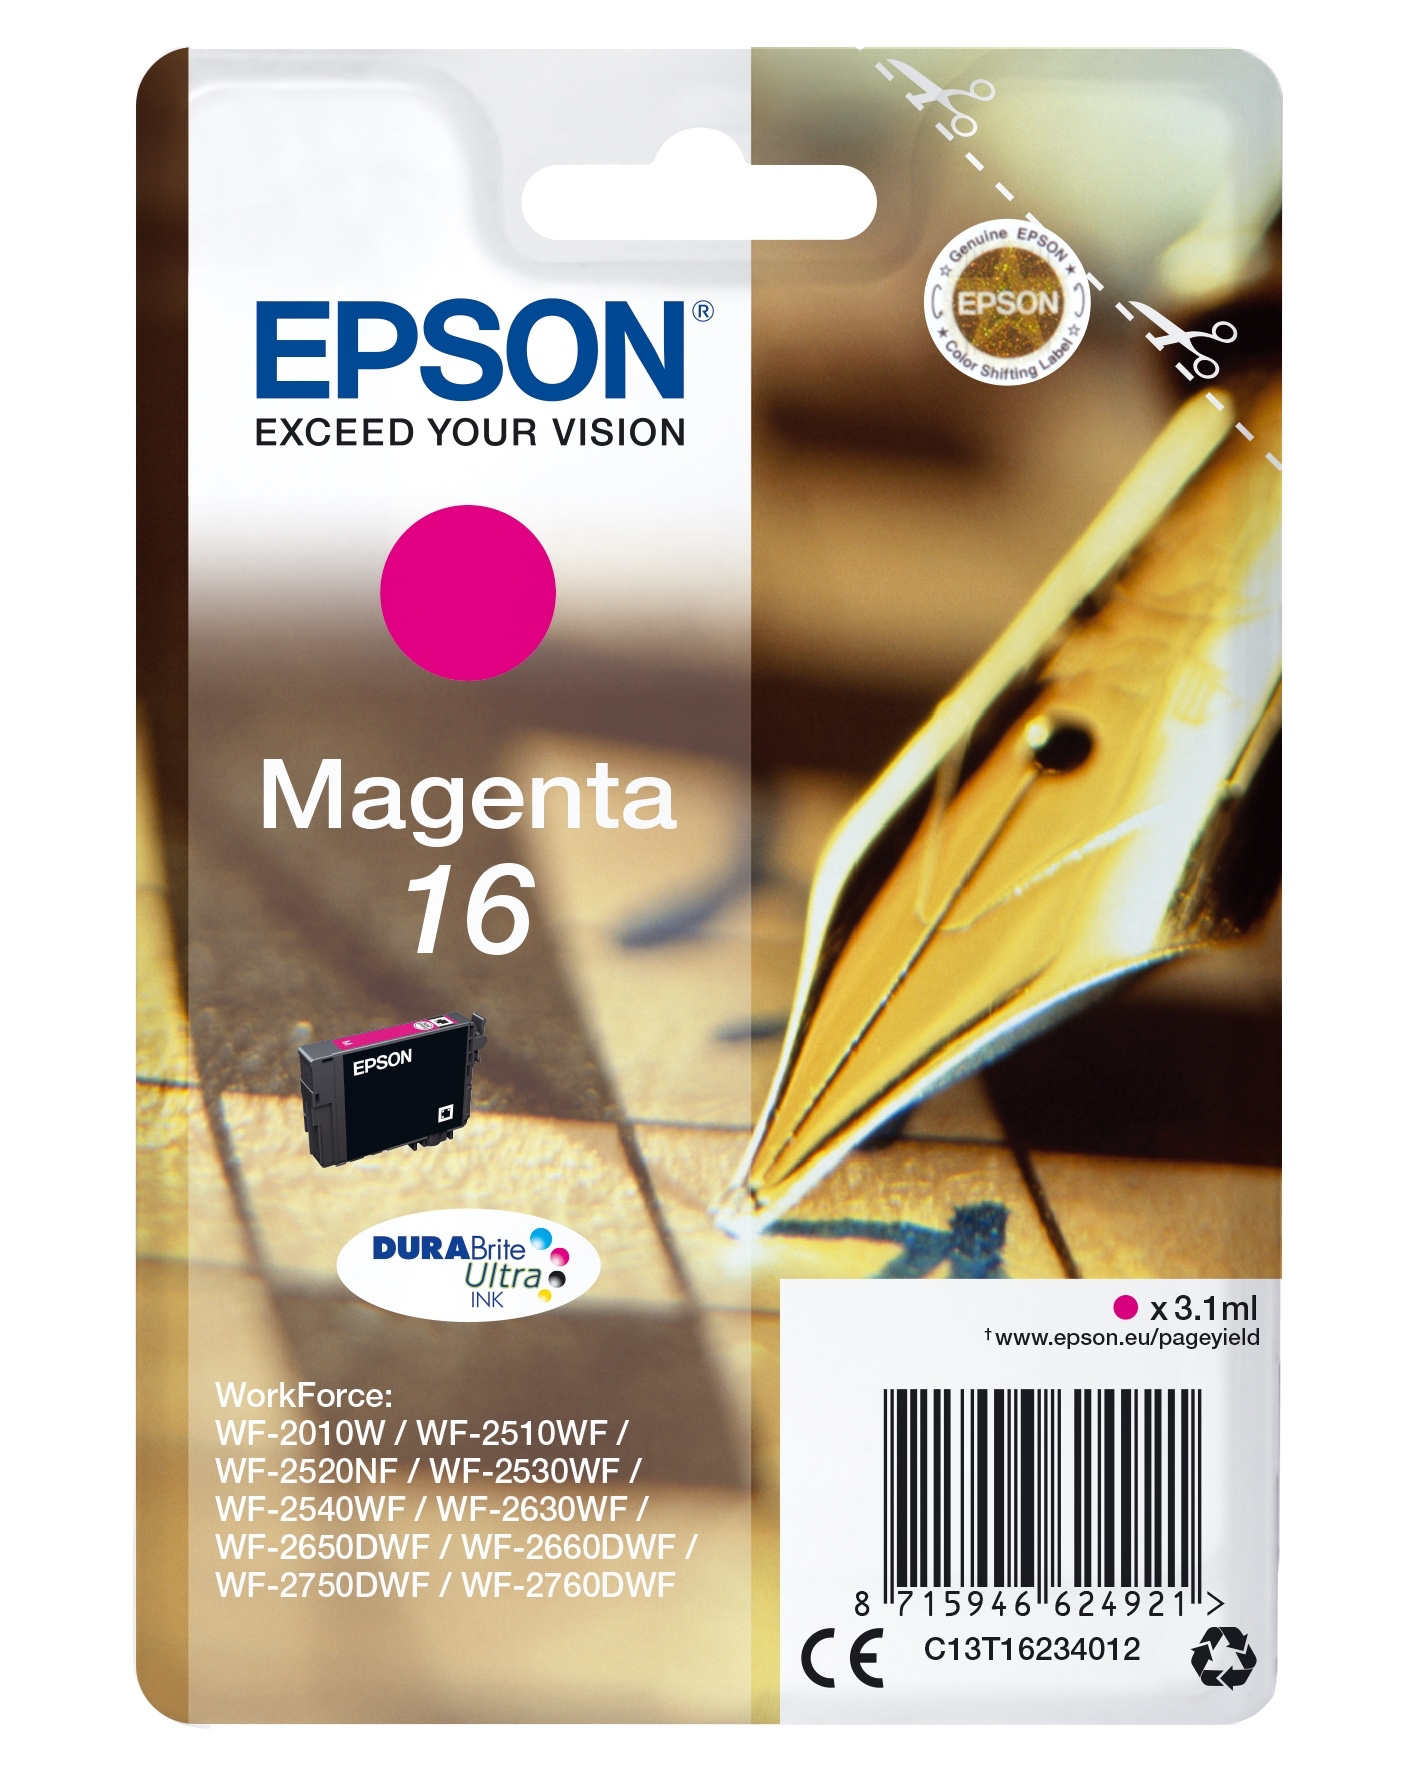 Epson Pen and crossword Cartuccia Penna e cruciverba Magenta Inchiostri DURABrite Ultra 16